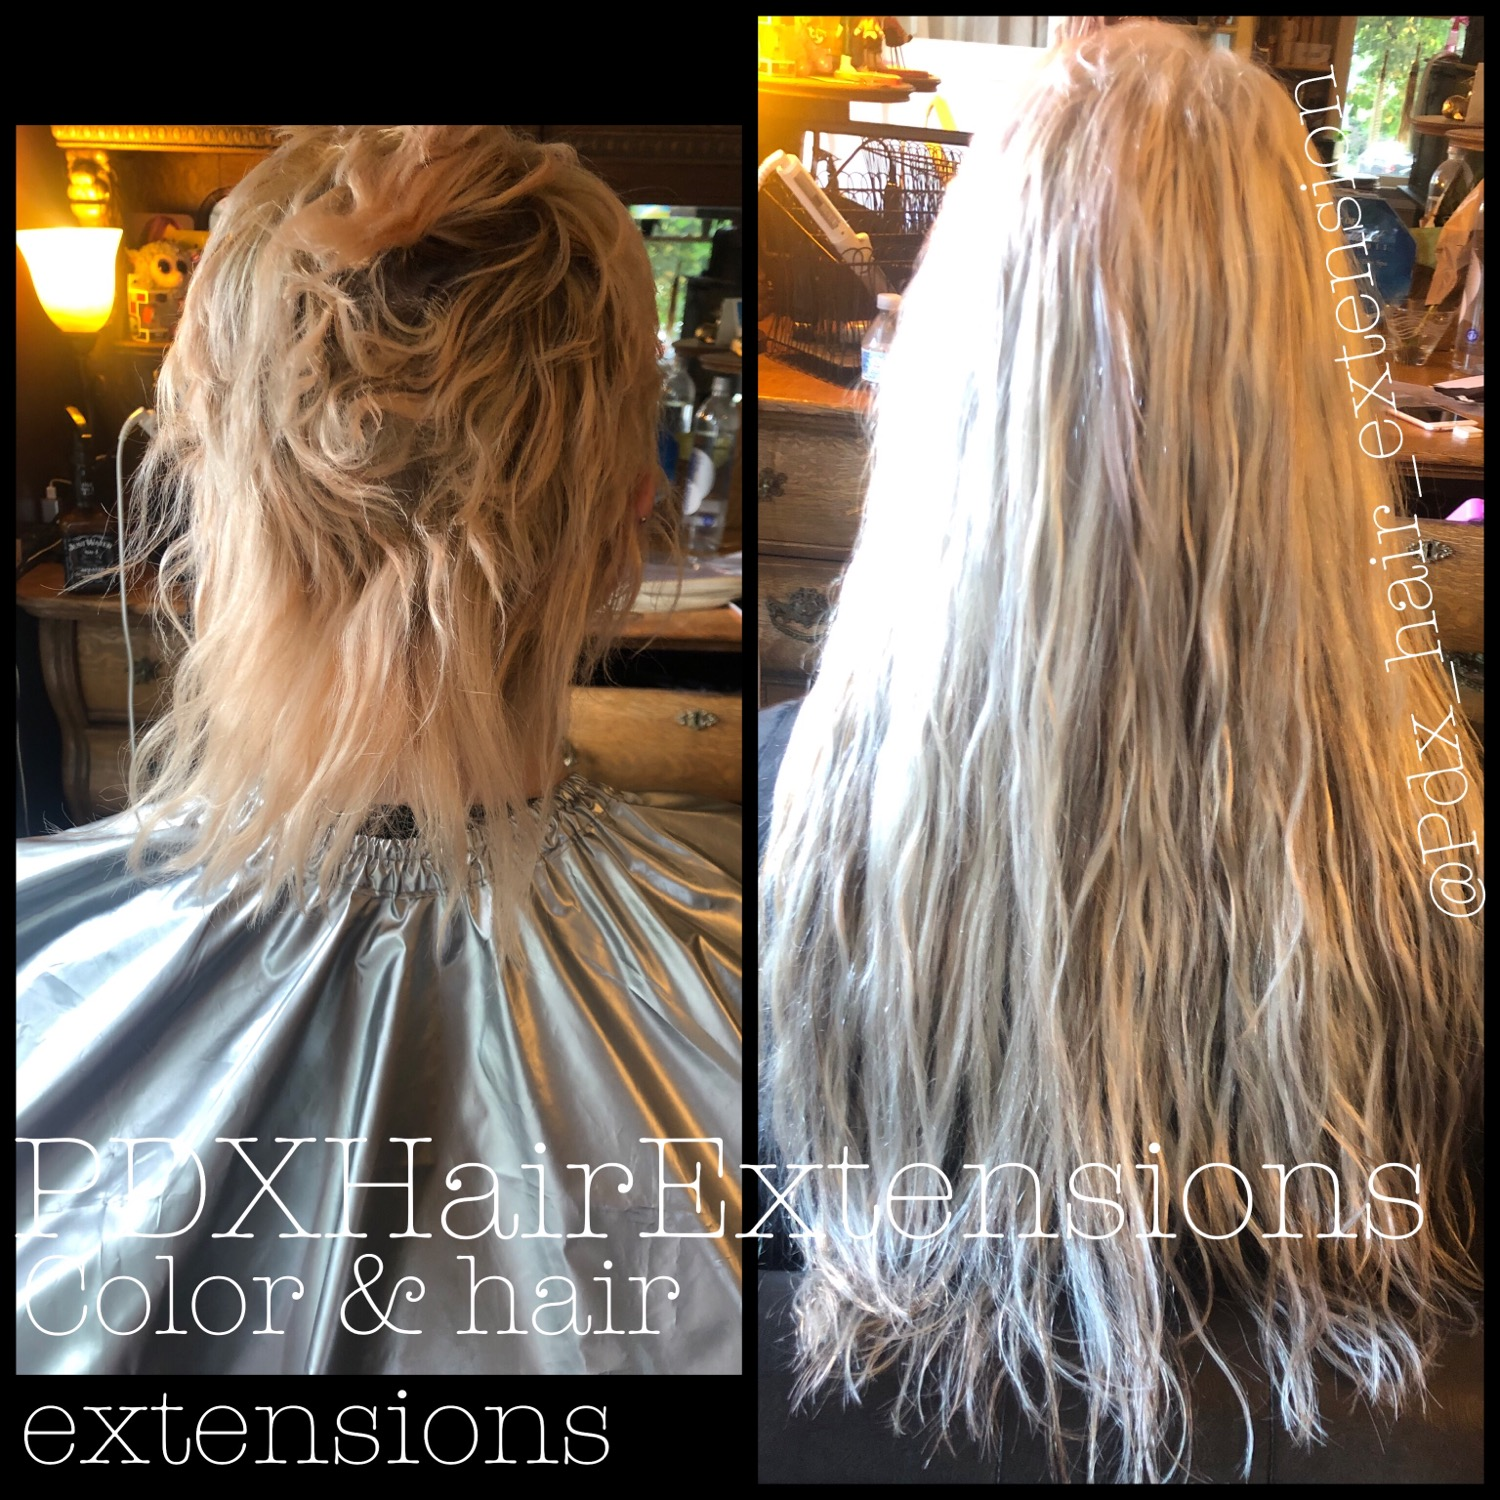 Light Blonde, Washed Hair Extensions